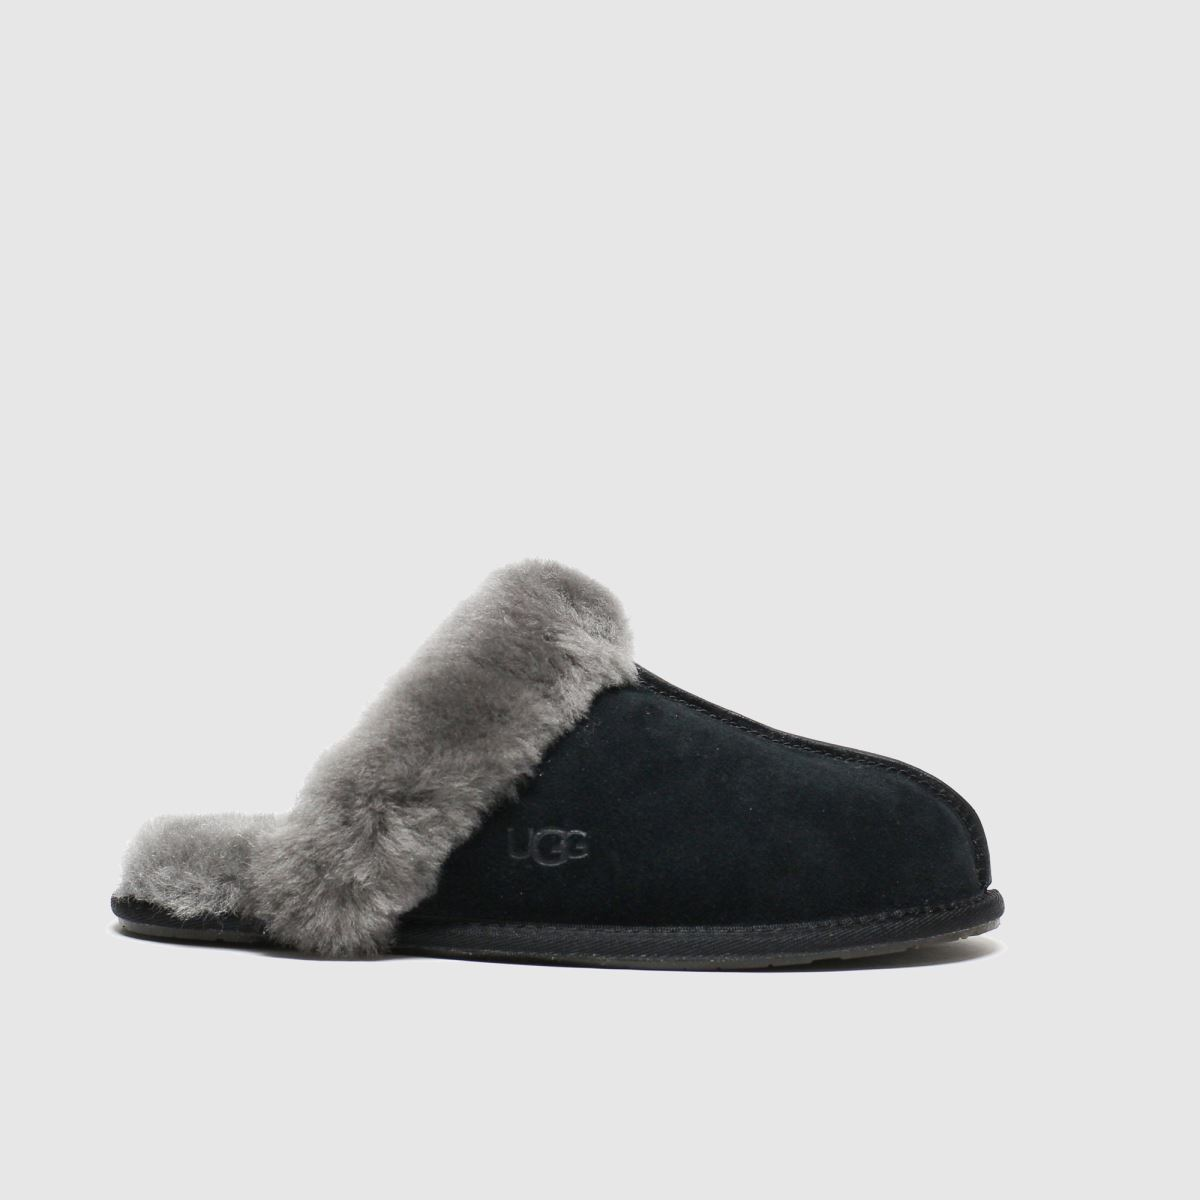 Ugg Black & Grey Scuffette Slippers